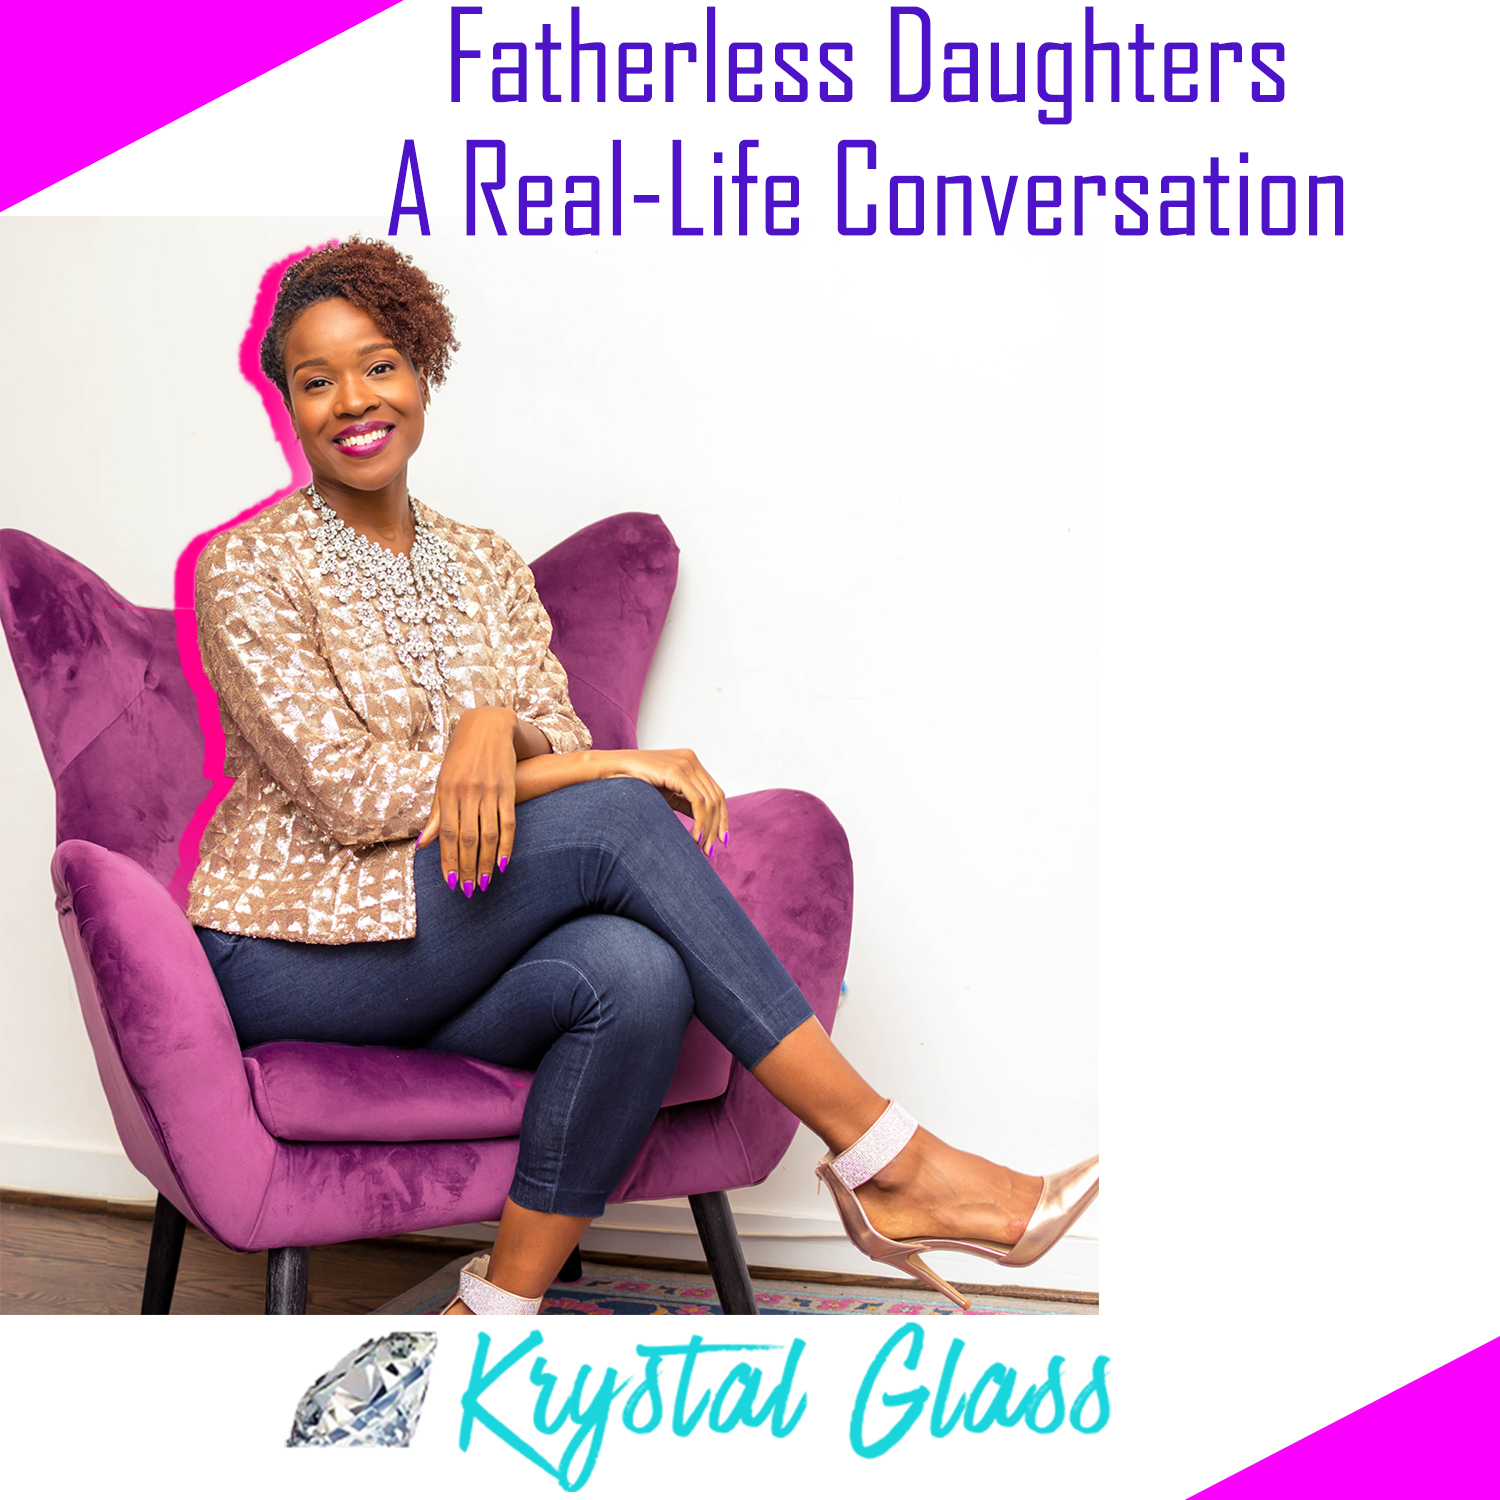 A Real-Life Conversation about being raised fatherless - Fatherless Daughters are women that grew up without a father and has directly or indirectly experienced unresolved daddy-issues. he reality is not all women who grew up without a father has side effects. But for many there are emotional side effects and mental roadblocks caused by not experiencing a father's love. Tune-in to hear the diverse experiences of women (some who grew up with a father and some who grew up without a father) share their perspective on how having or not having a father has impacted their relationships and outlook on men.